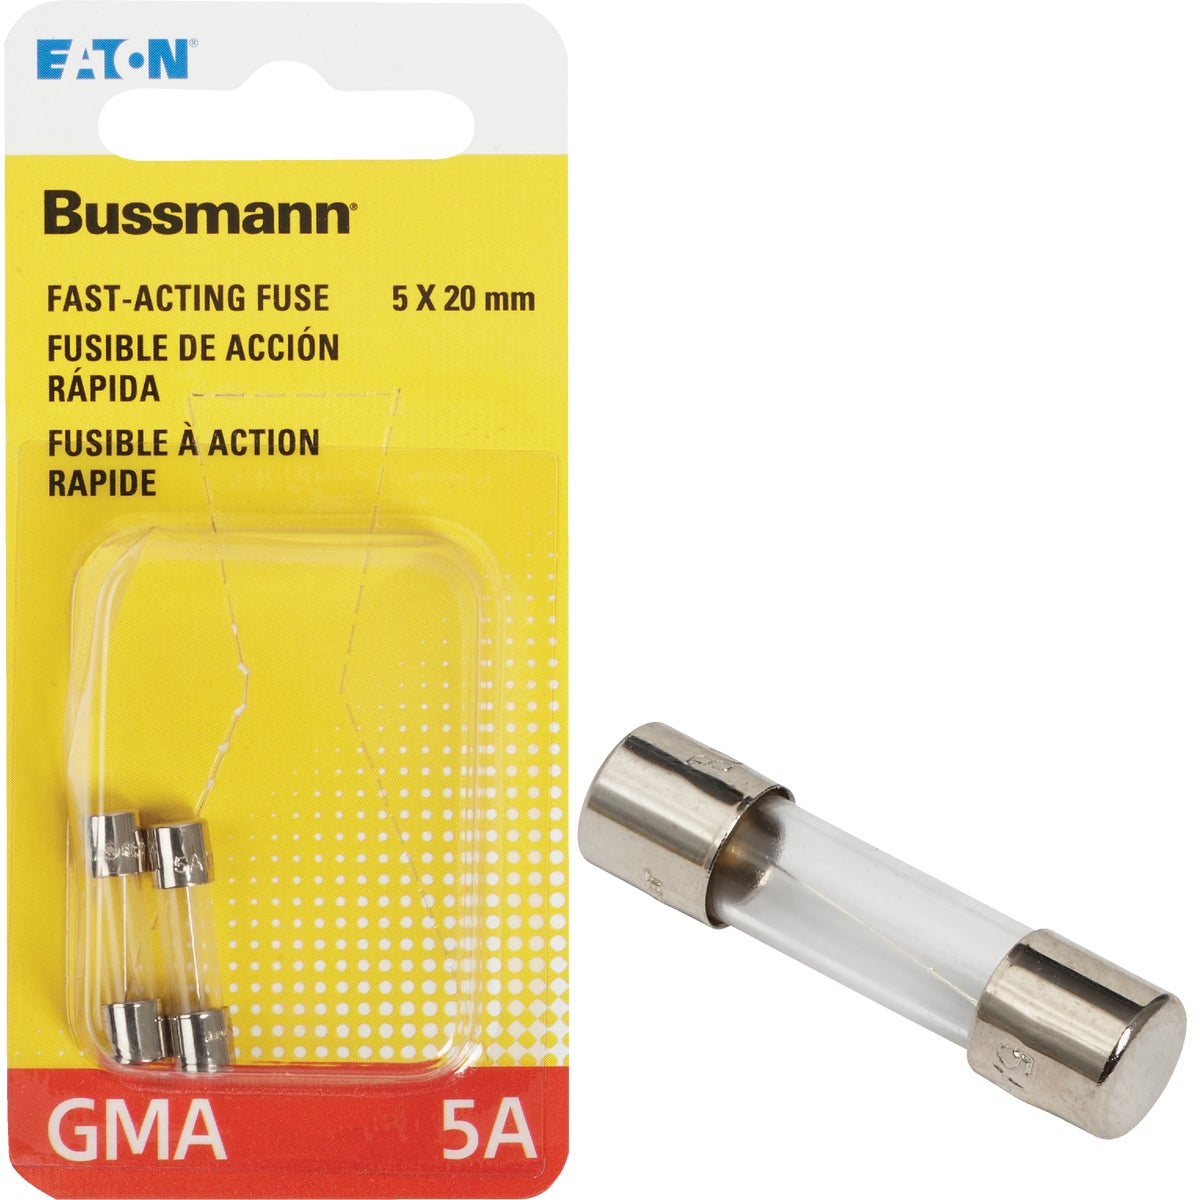 5A FAST ACTING FUSE - BP/GMA-5A by Bussmann Cooper